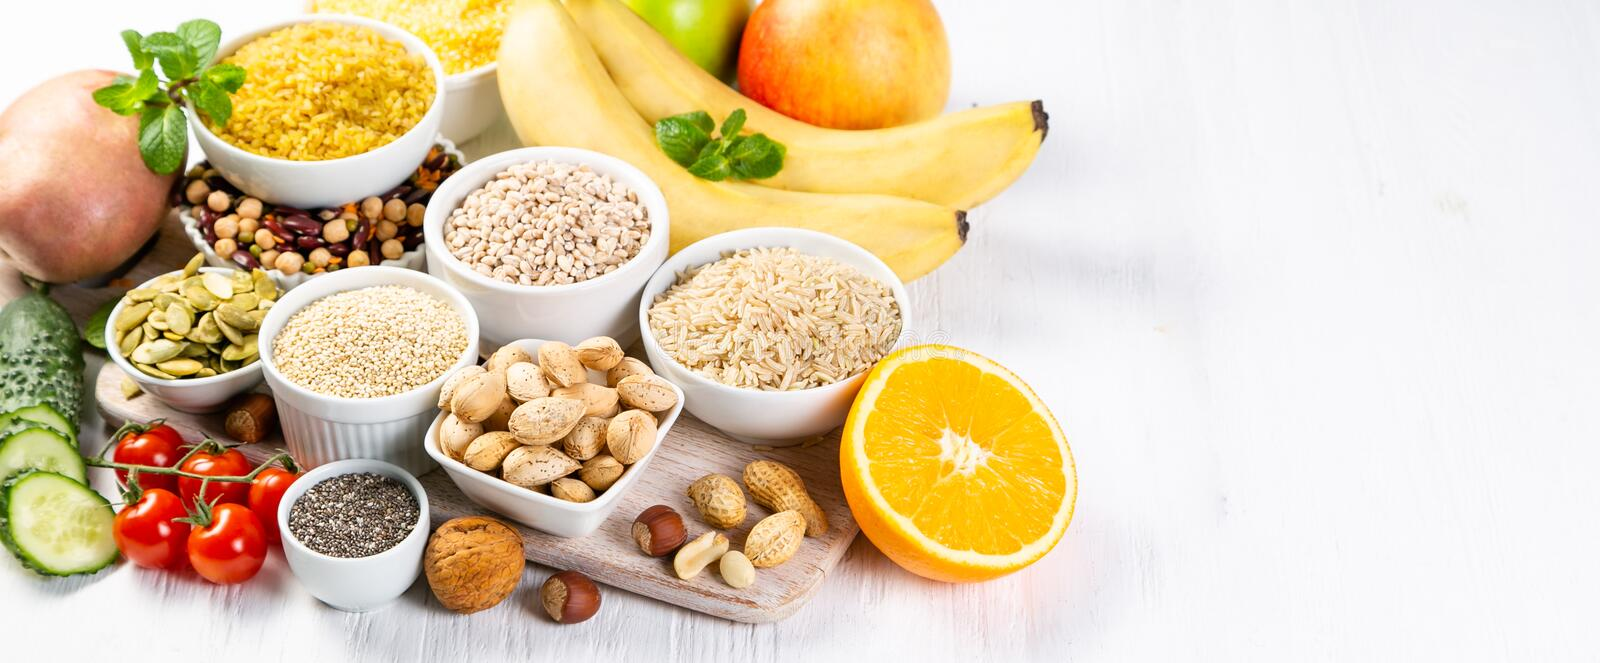 Selection of good carbohydrates sources. Healthy vegan diet. Selection of good carbohydrates sources - vegetables, fruits, grains, legumes, nuts and seeds royalty free stock image